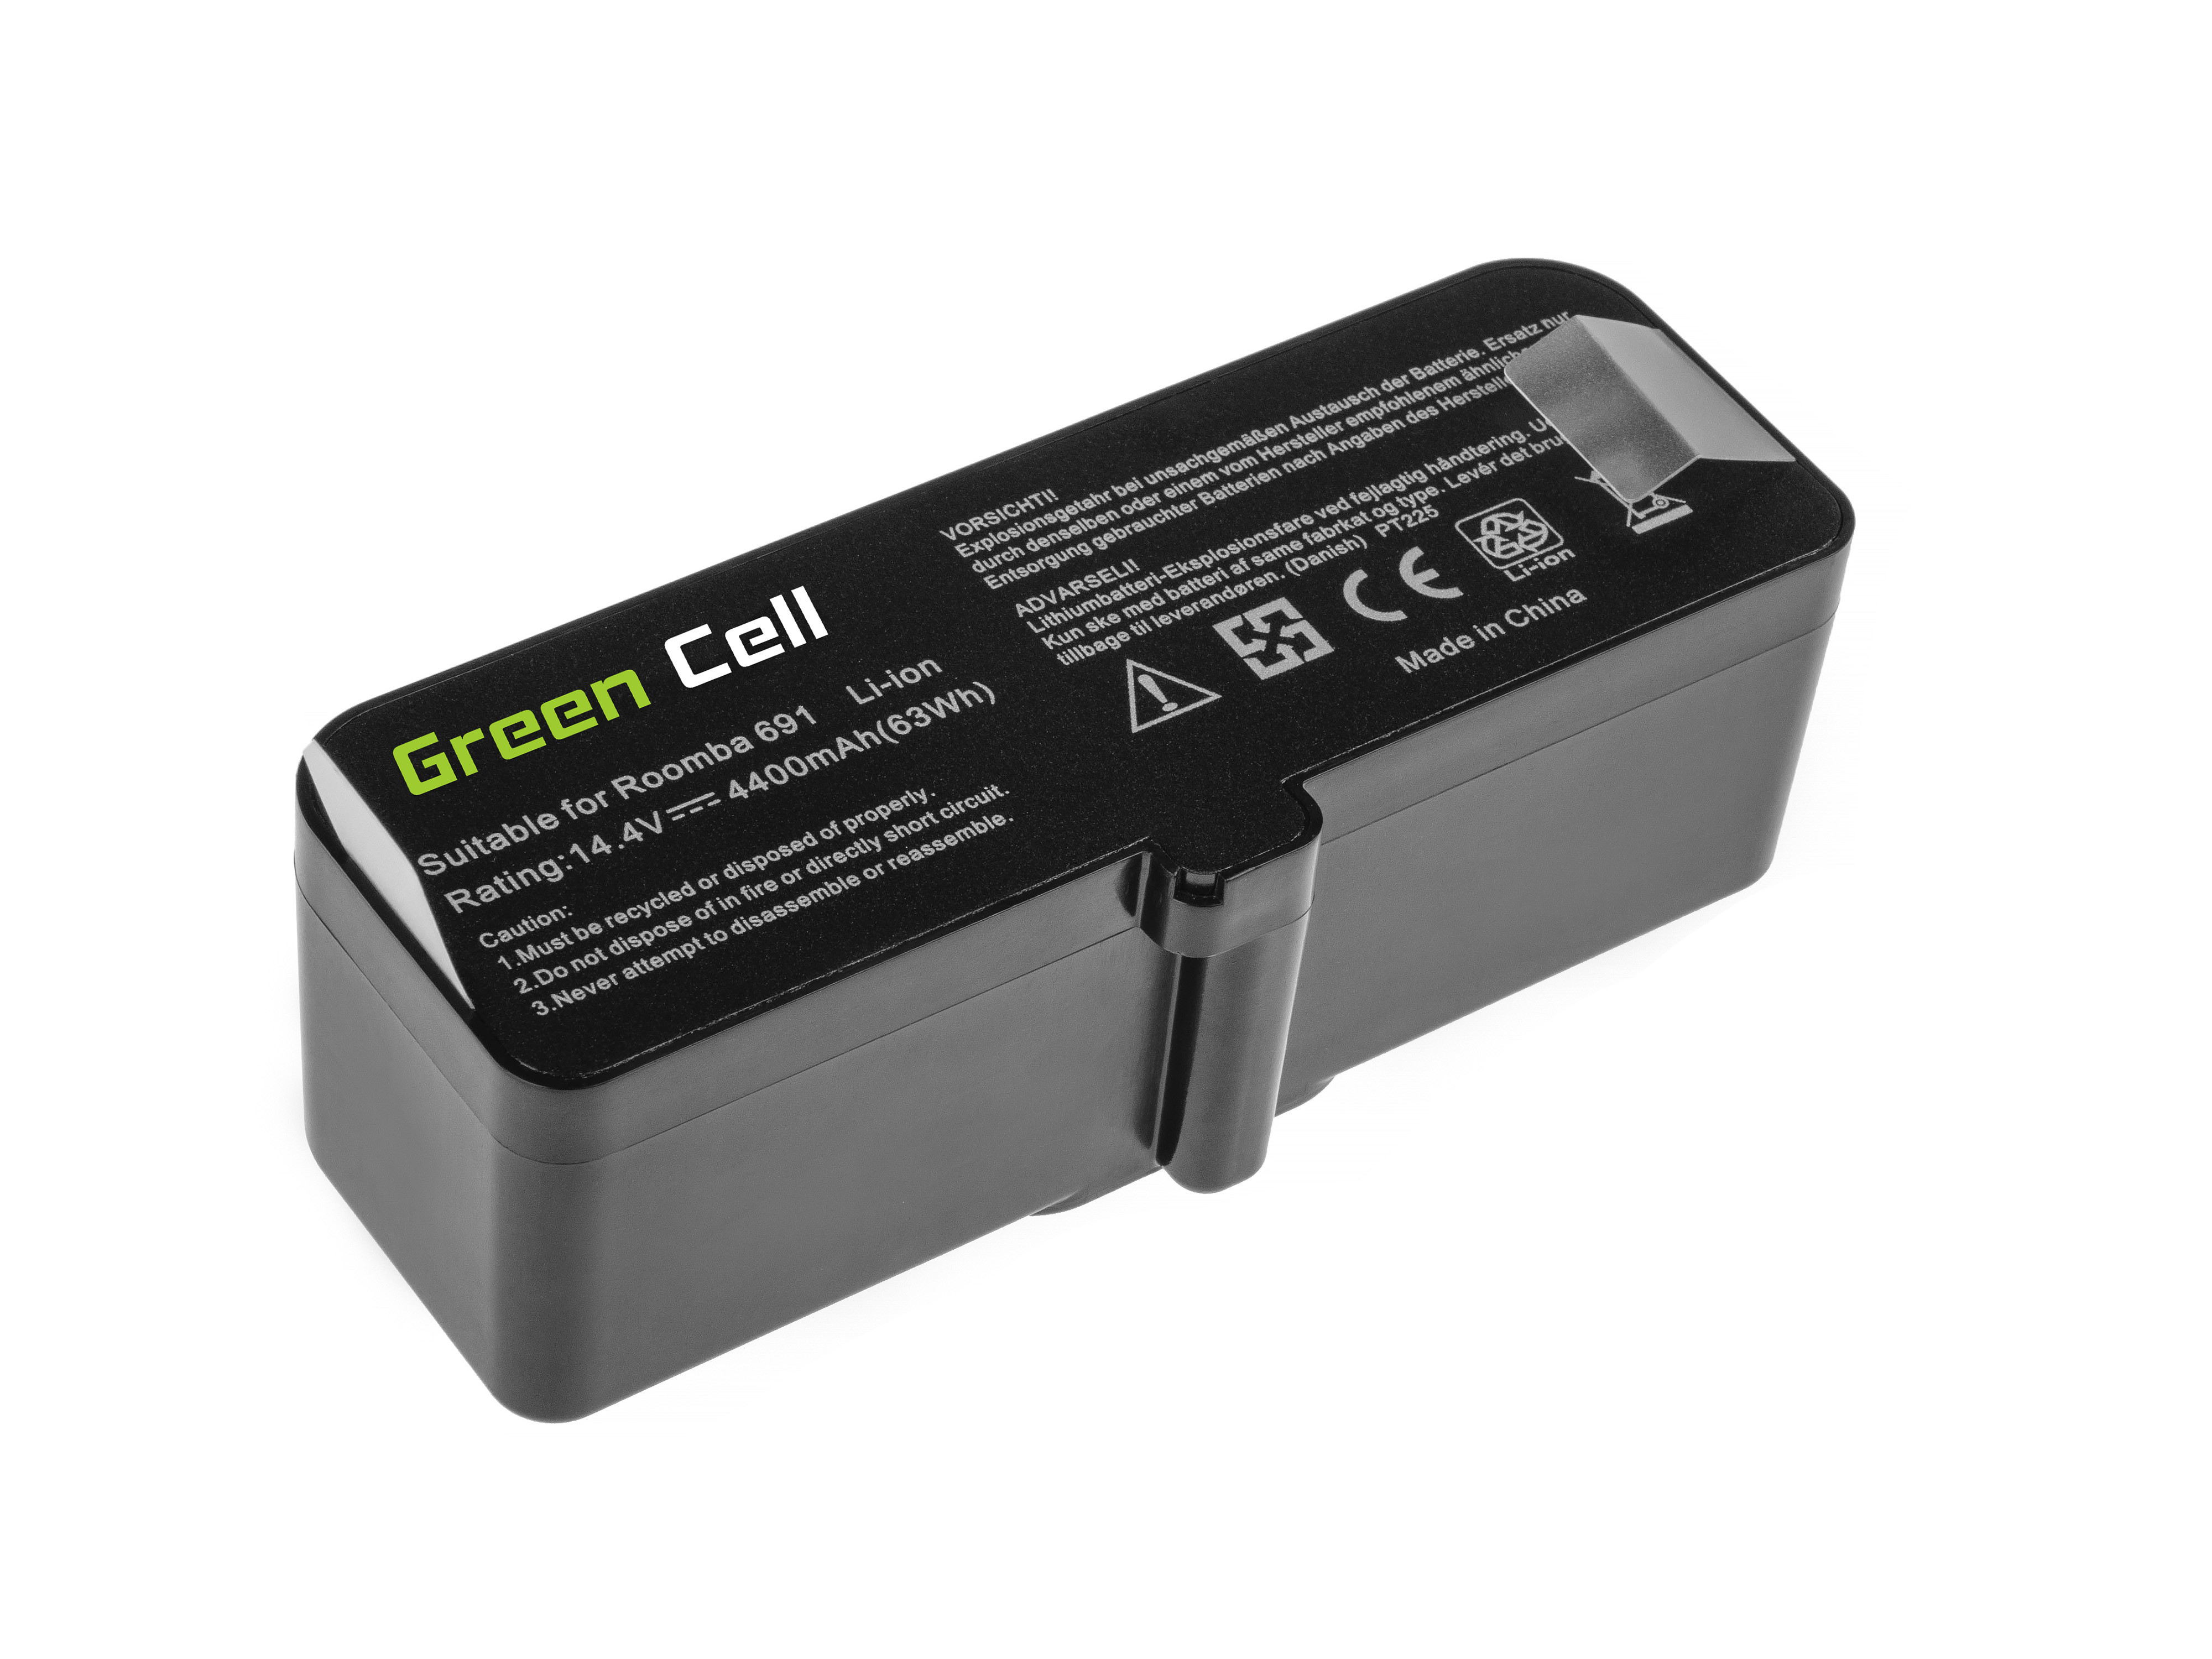 Green Cell Power Tool Battery 4462425 4502233 Robot Roomba 681 691 695 696 801 805 850 860 890 891 895 896 960 966 980 985